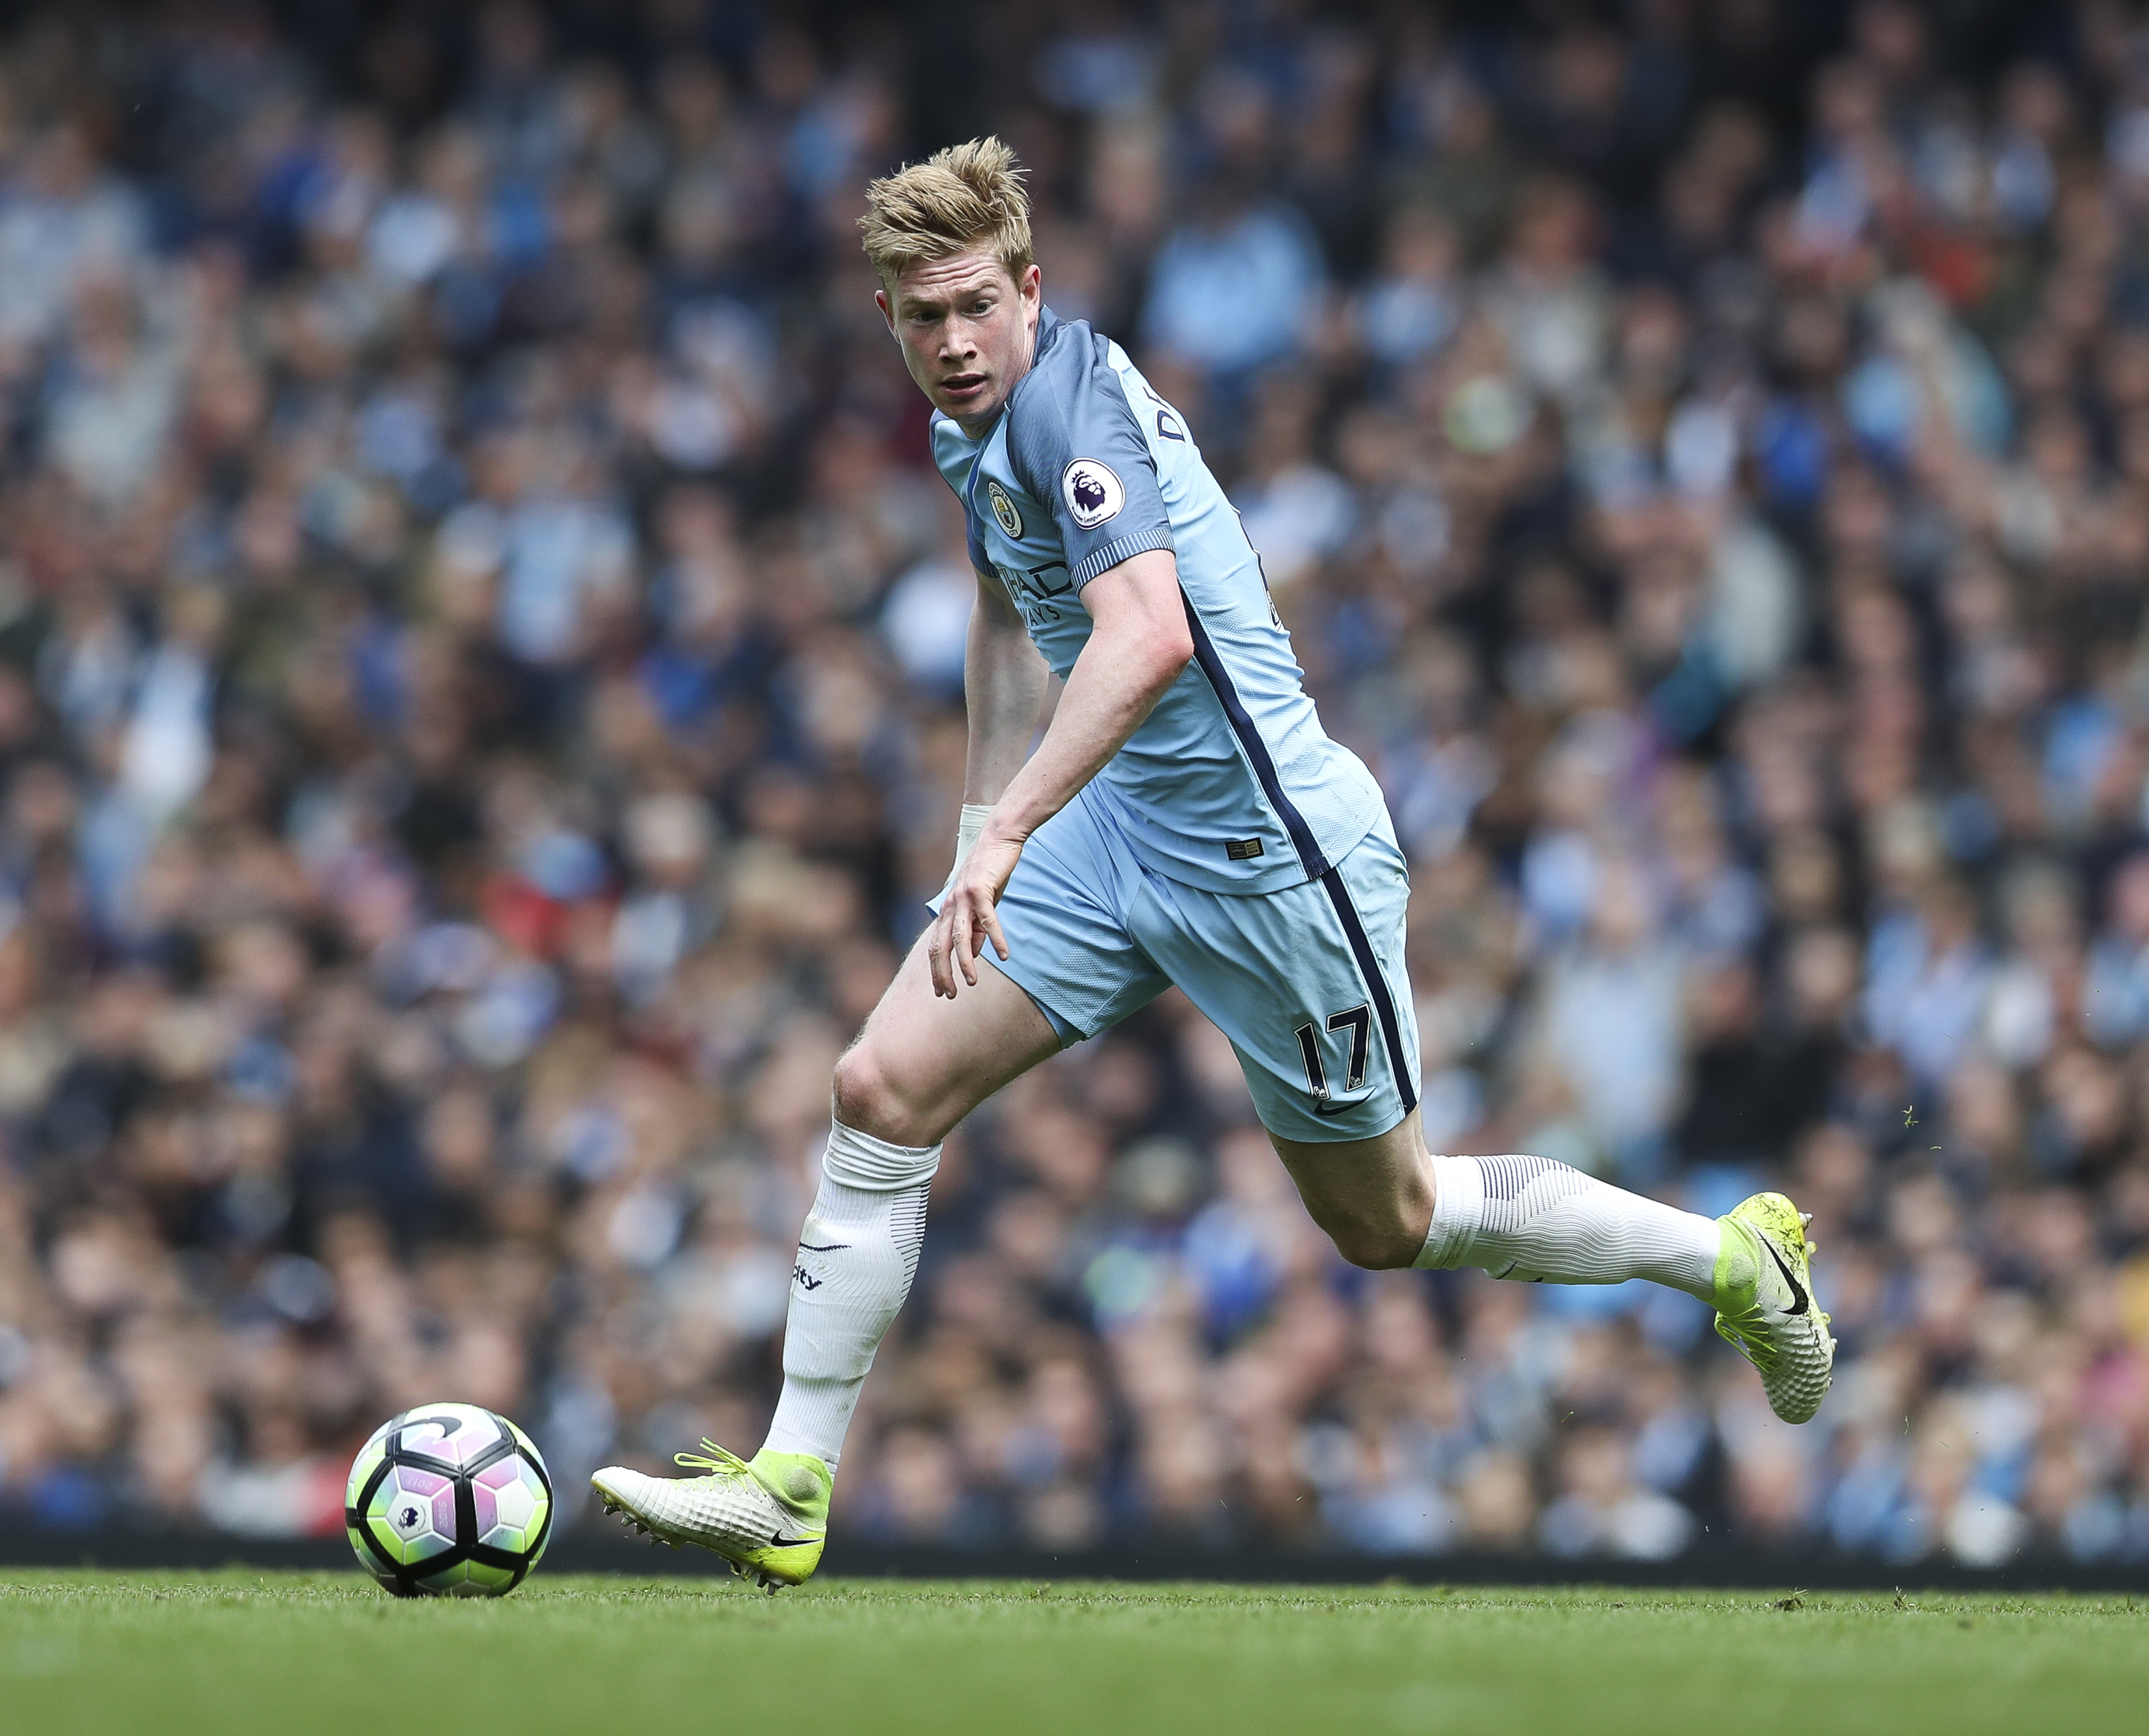 Fantasy Football: Kane, De Bruyne And Other Premier League